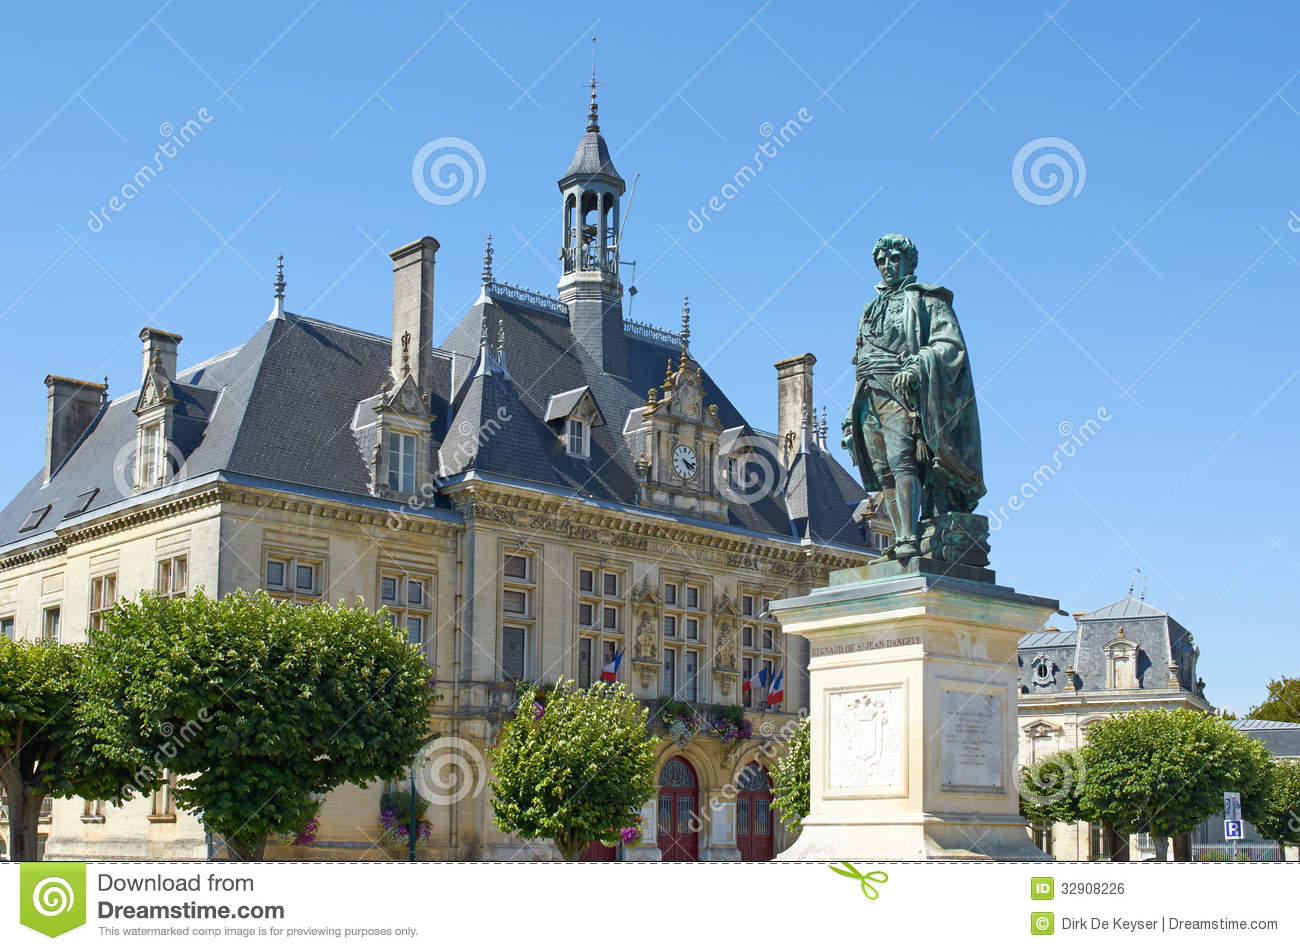 city hall of st jean d 39 angely with bronze statue of regnaud de st jean d 39 angely royalty free. Black Bedroom Furniture Sets. Home Design Ideas